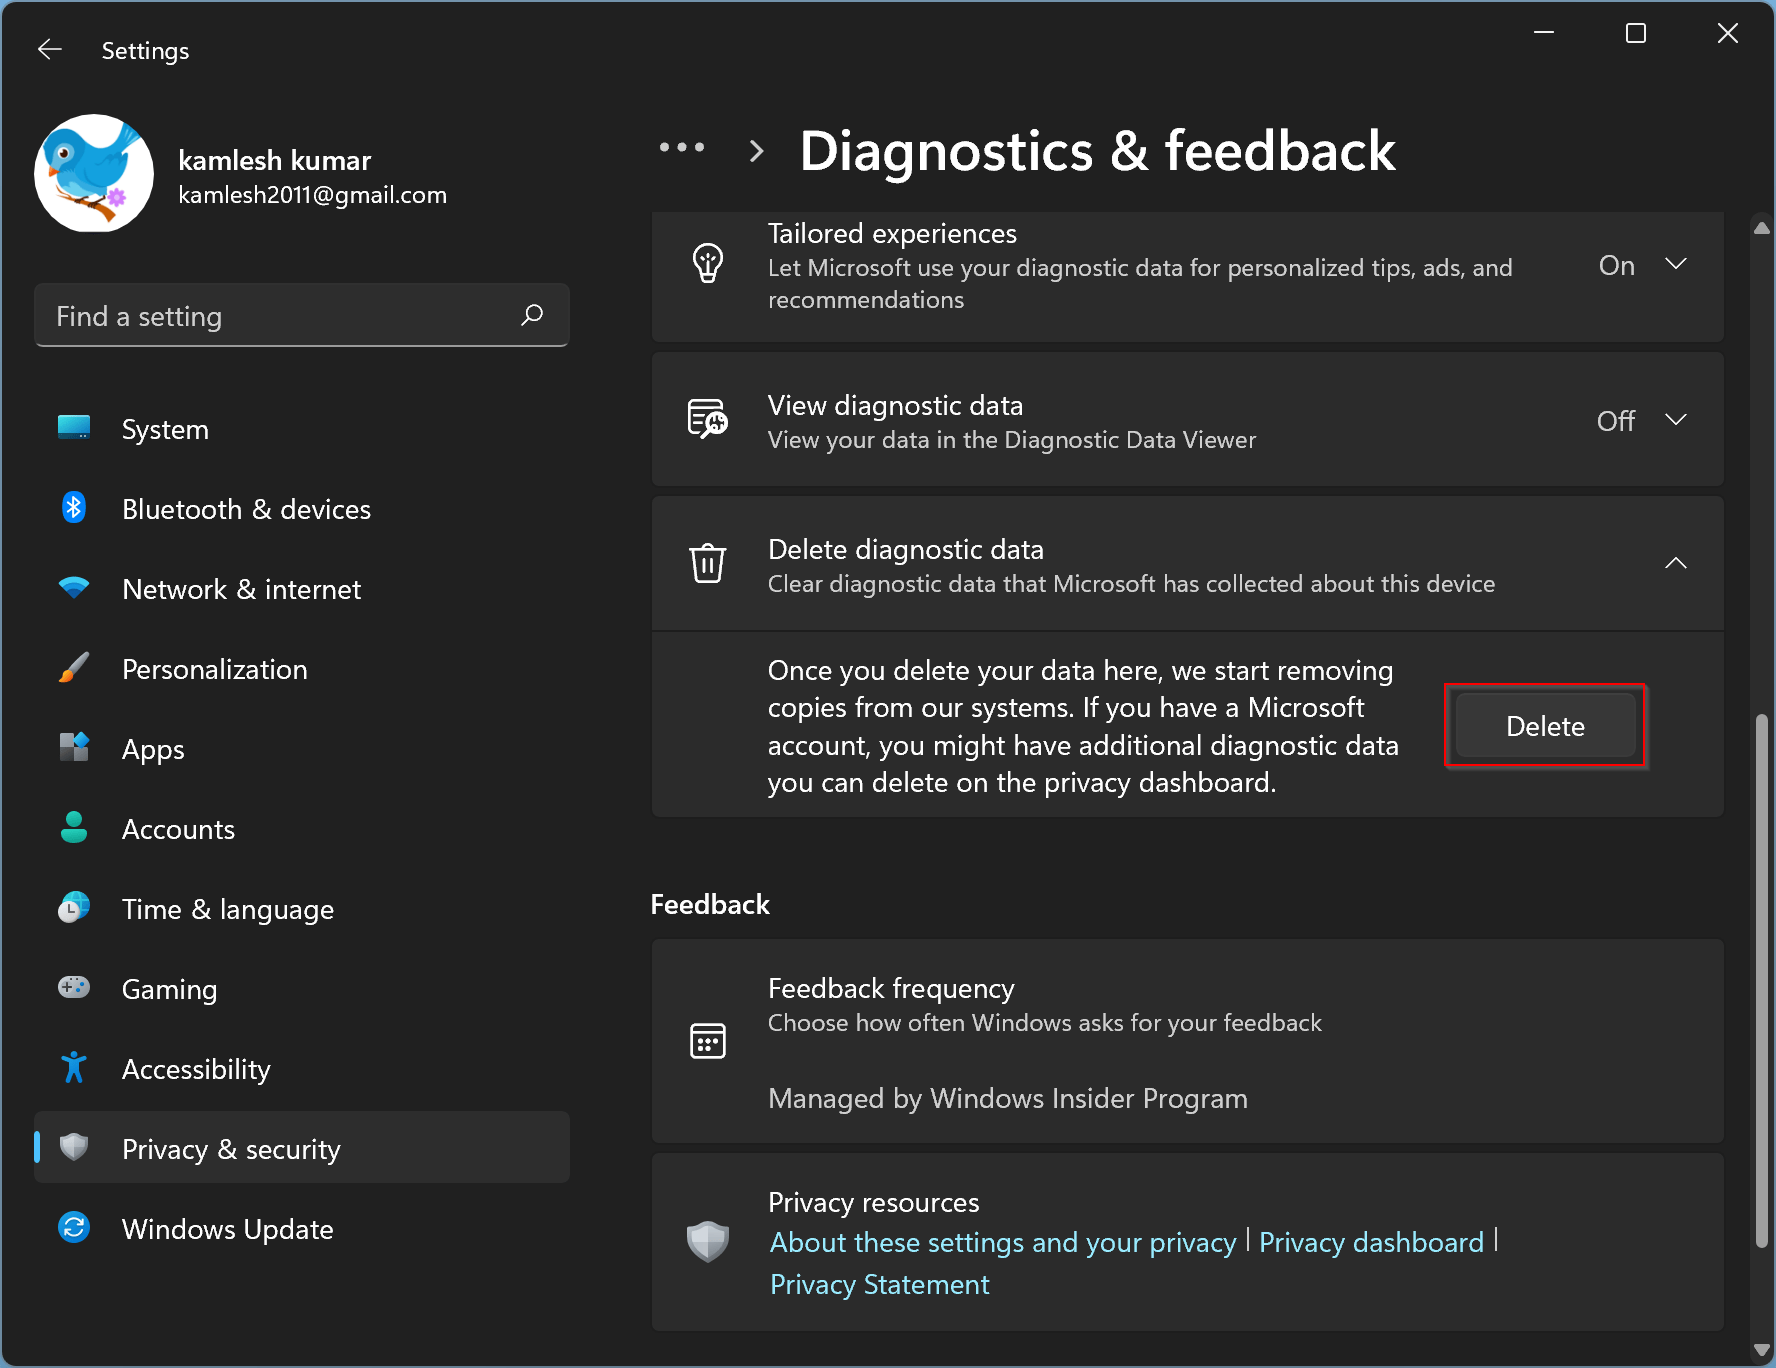 How to Disable App Diagnostics in Windows 11?